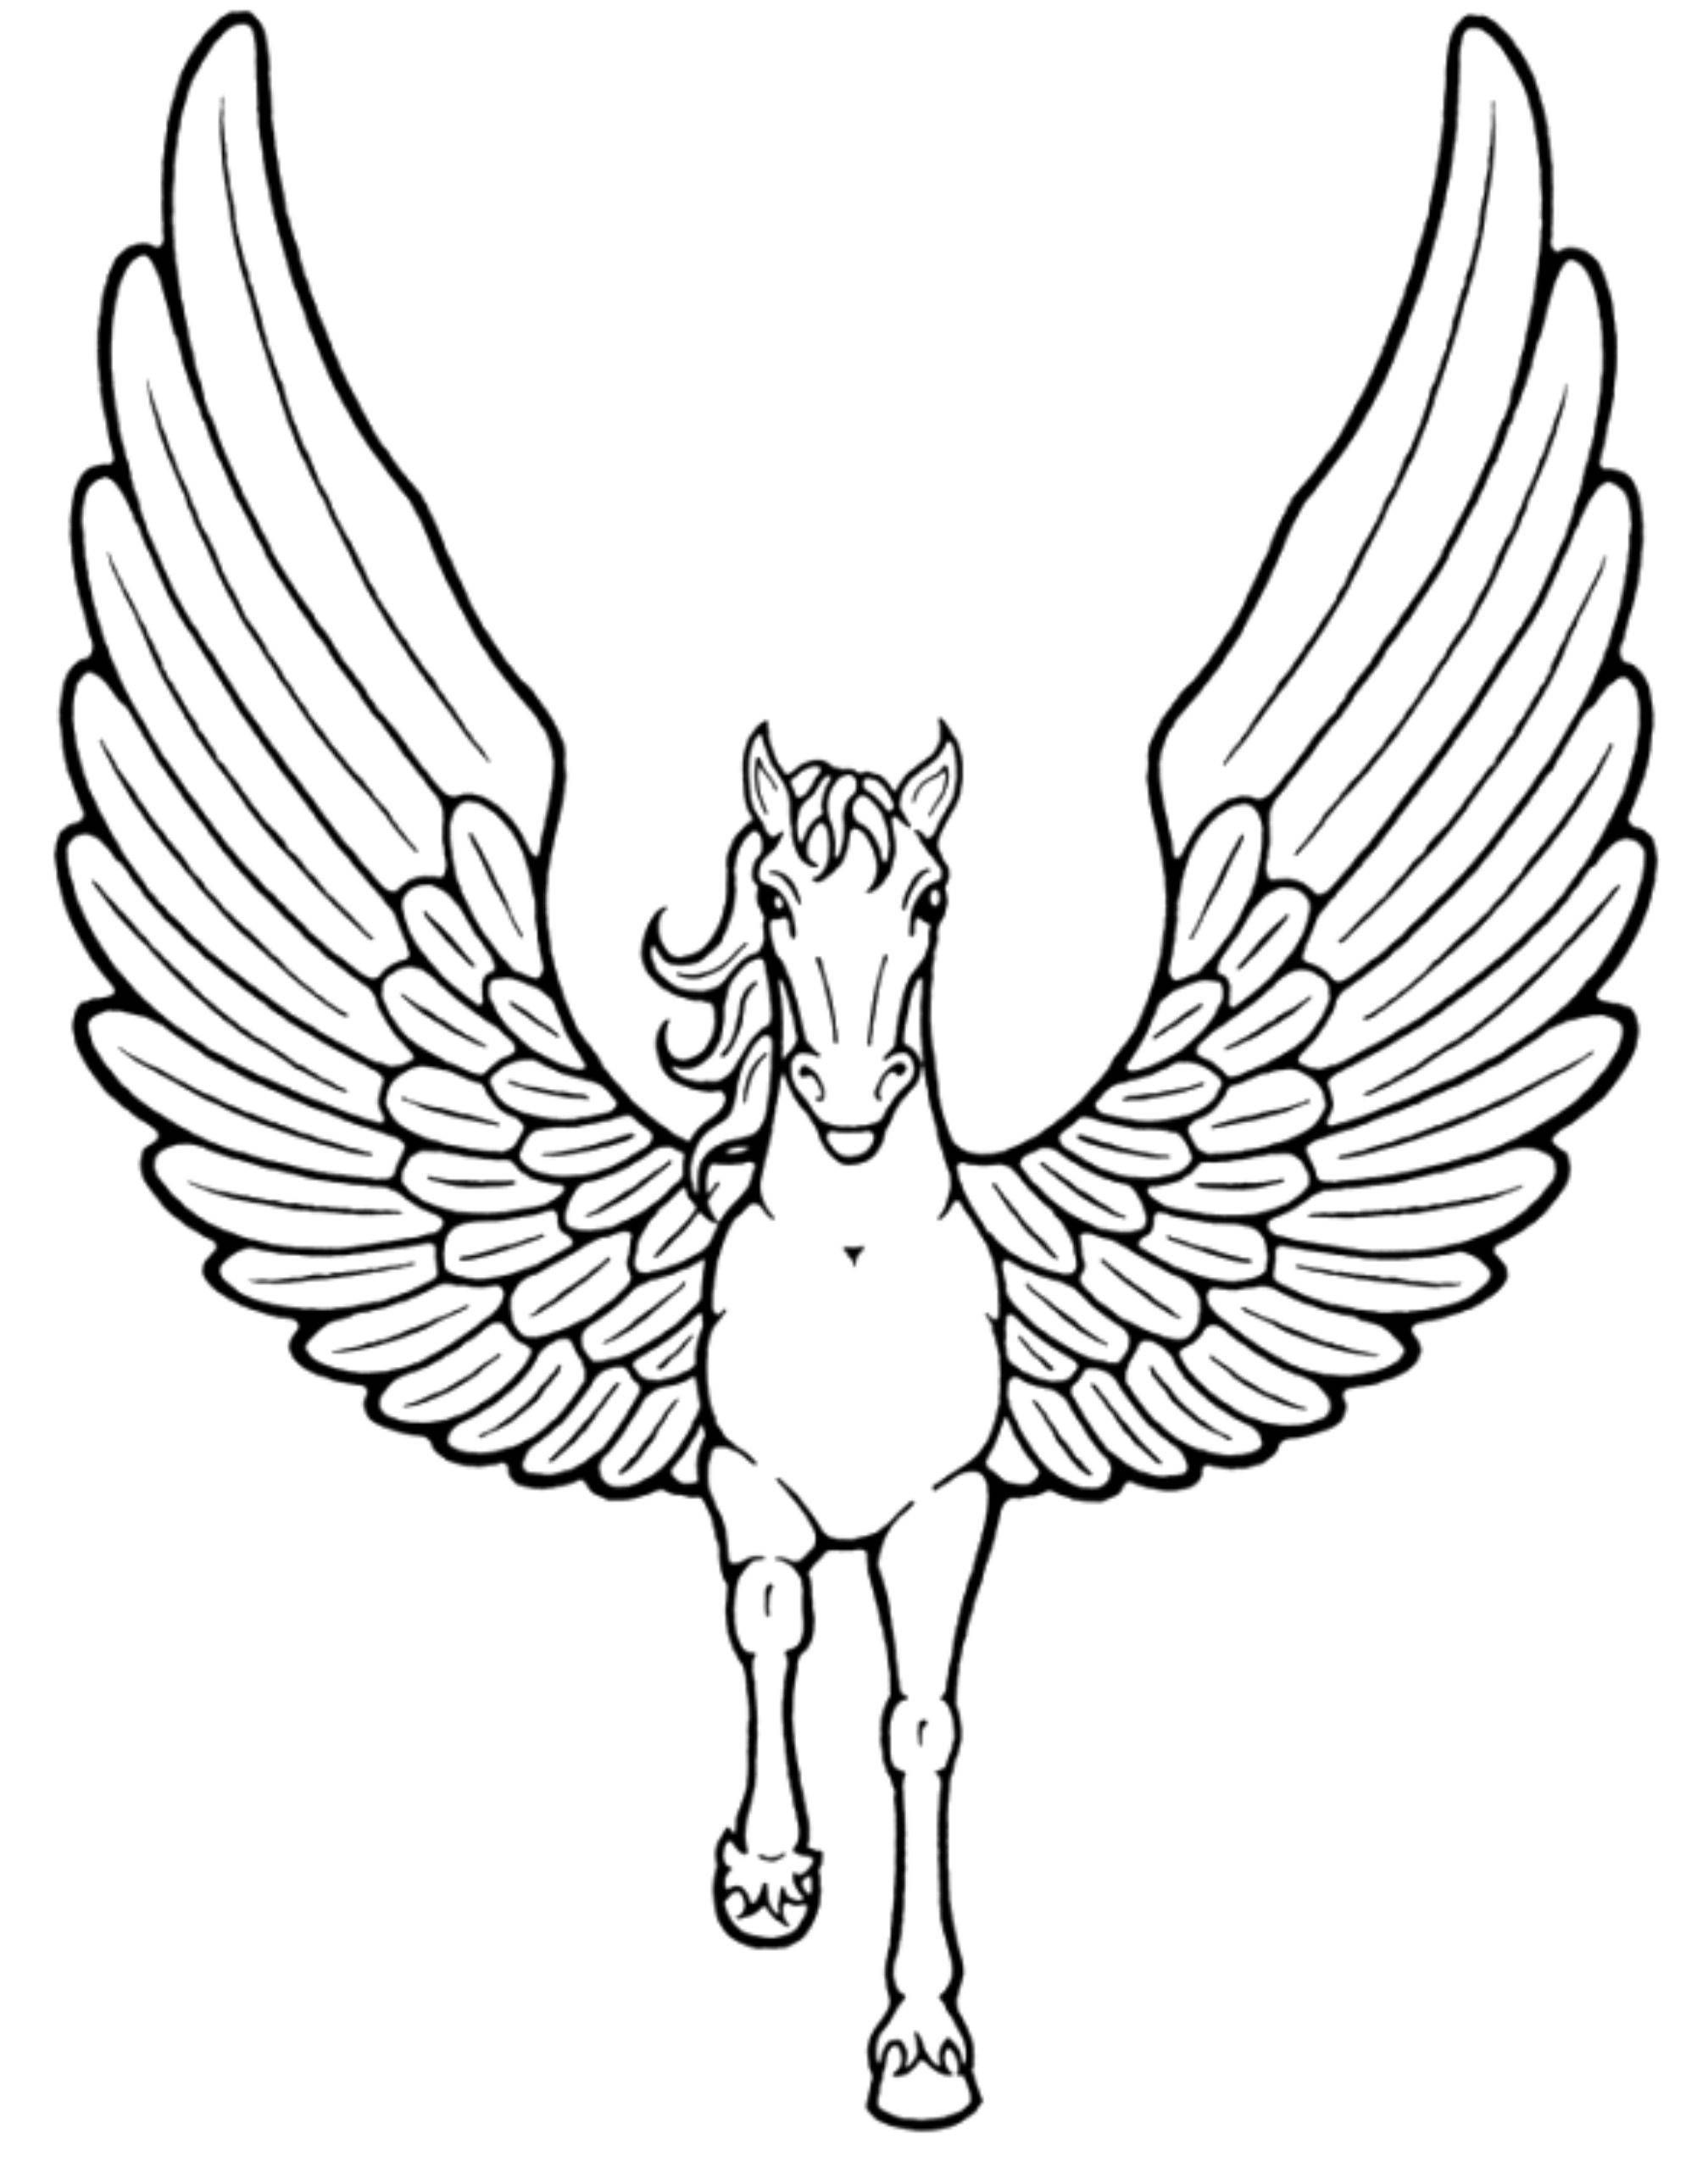 Unicorn coloring pages to print - Easy Unicorn Coloring Pages Printable Kids Colouring Pages